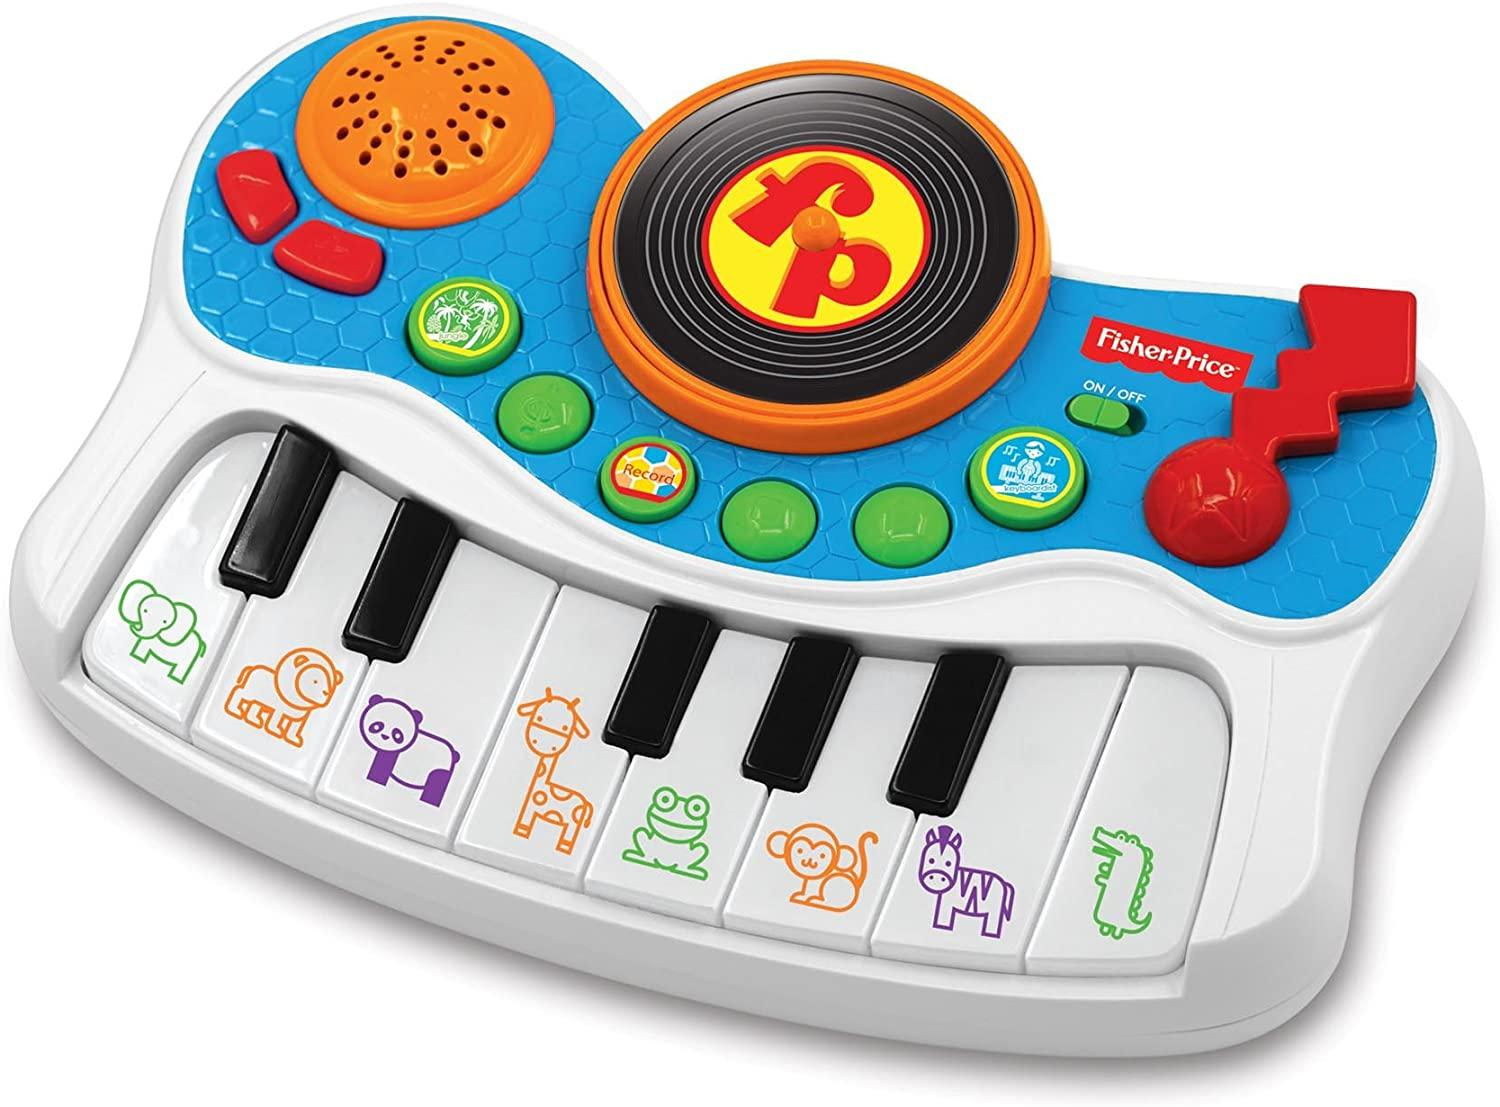 Piano musical studio FISHER PRICE